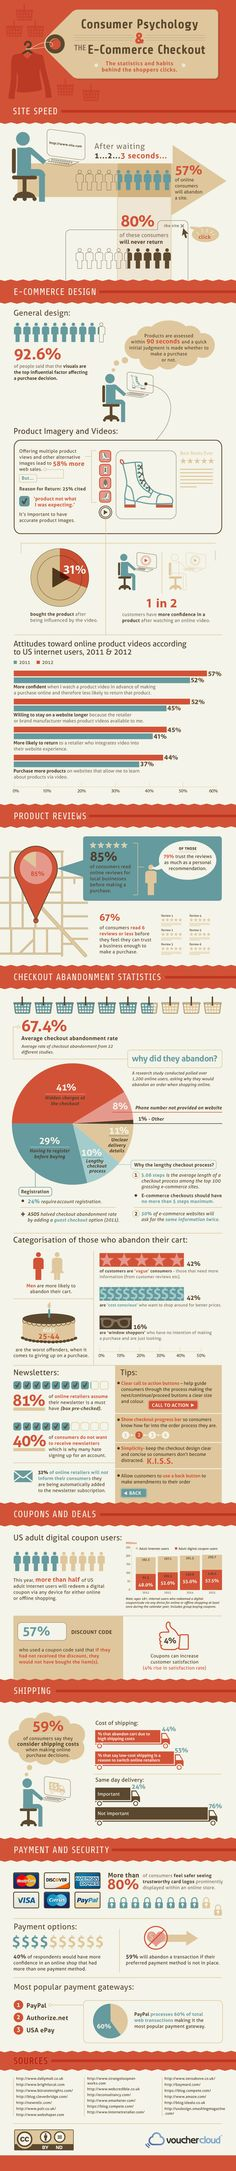 Consumer Psychology and the E-Commerce Checkout